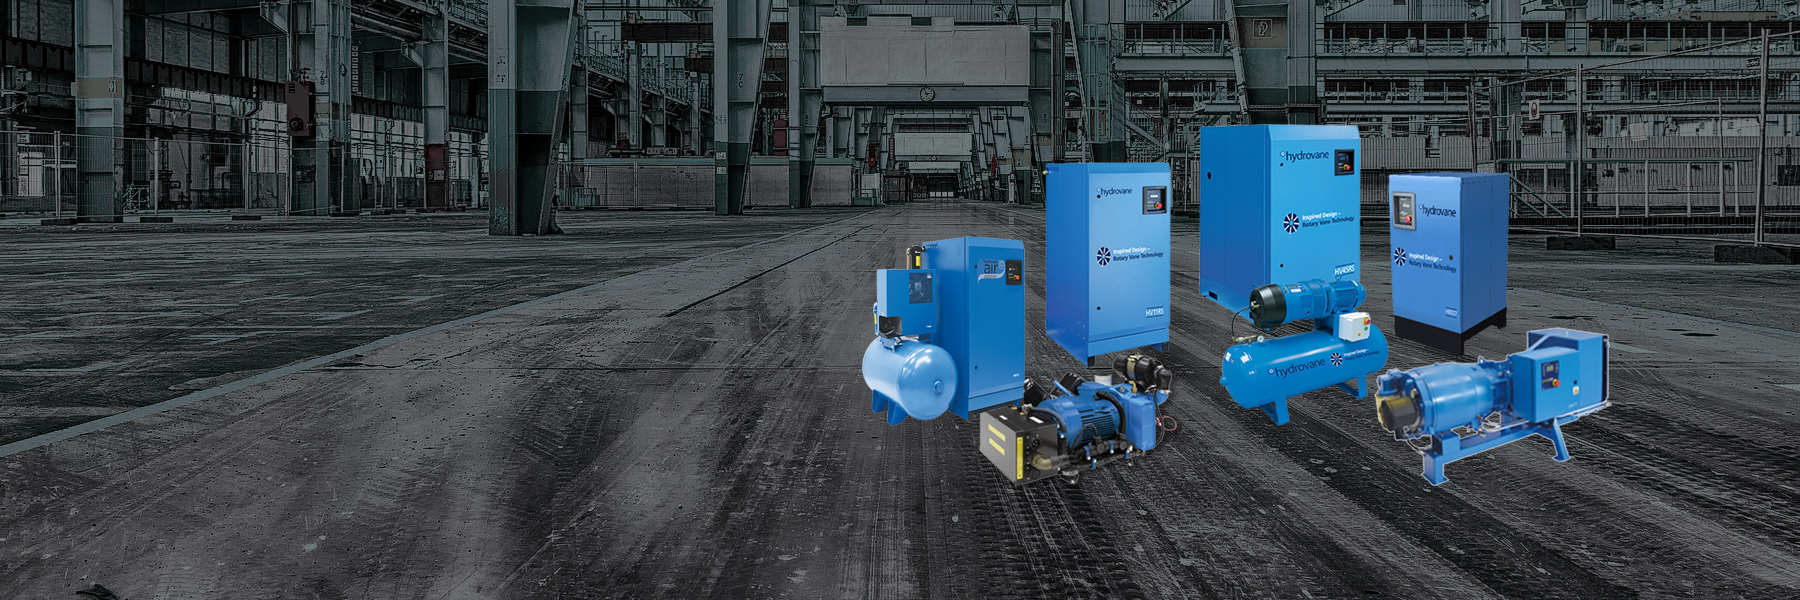 Hydrovane Air Compressors Factory-Rotary-Vane